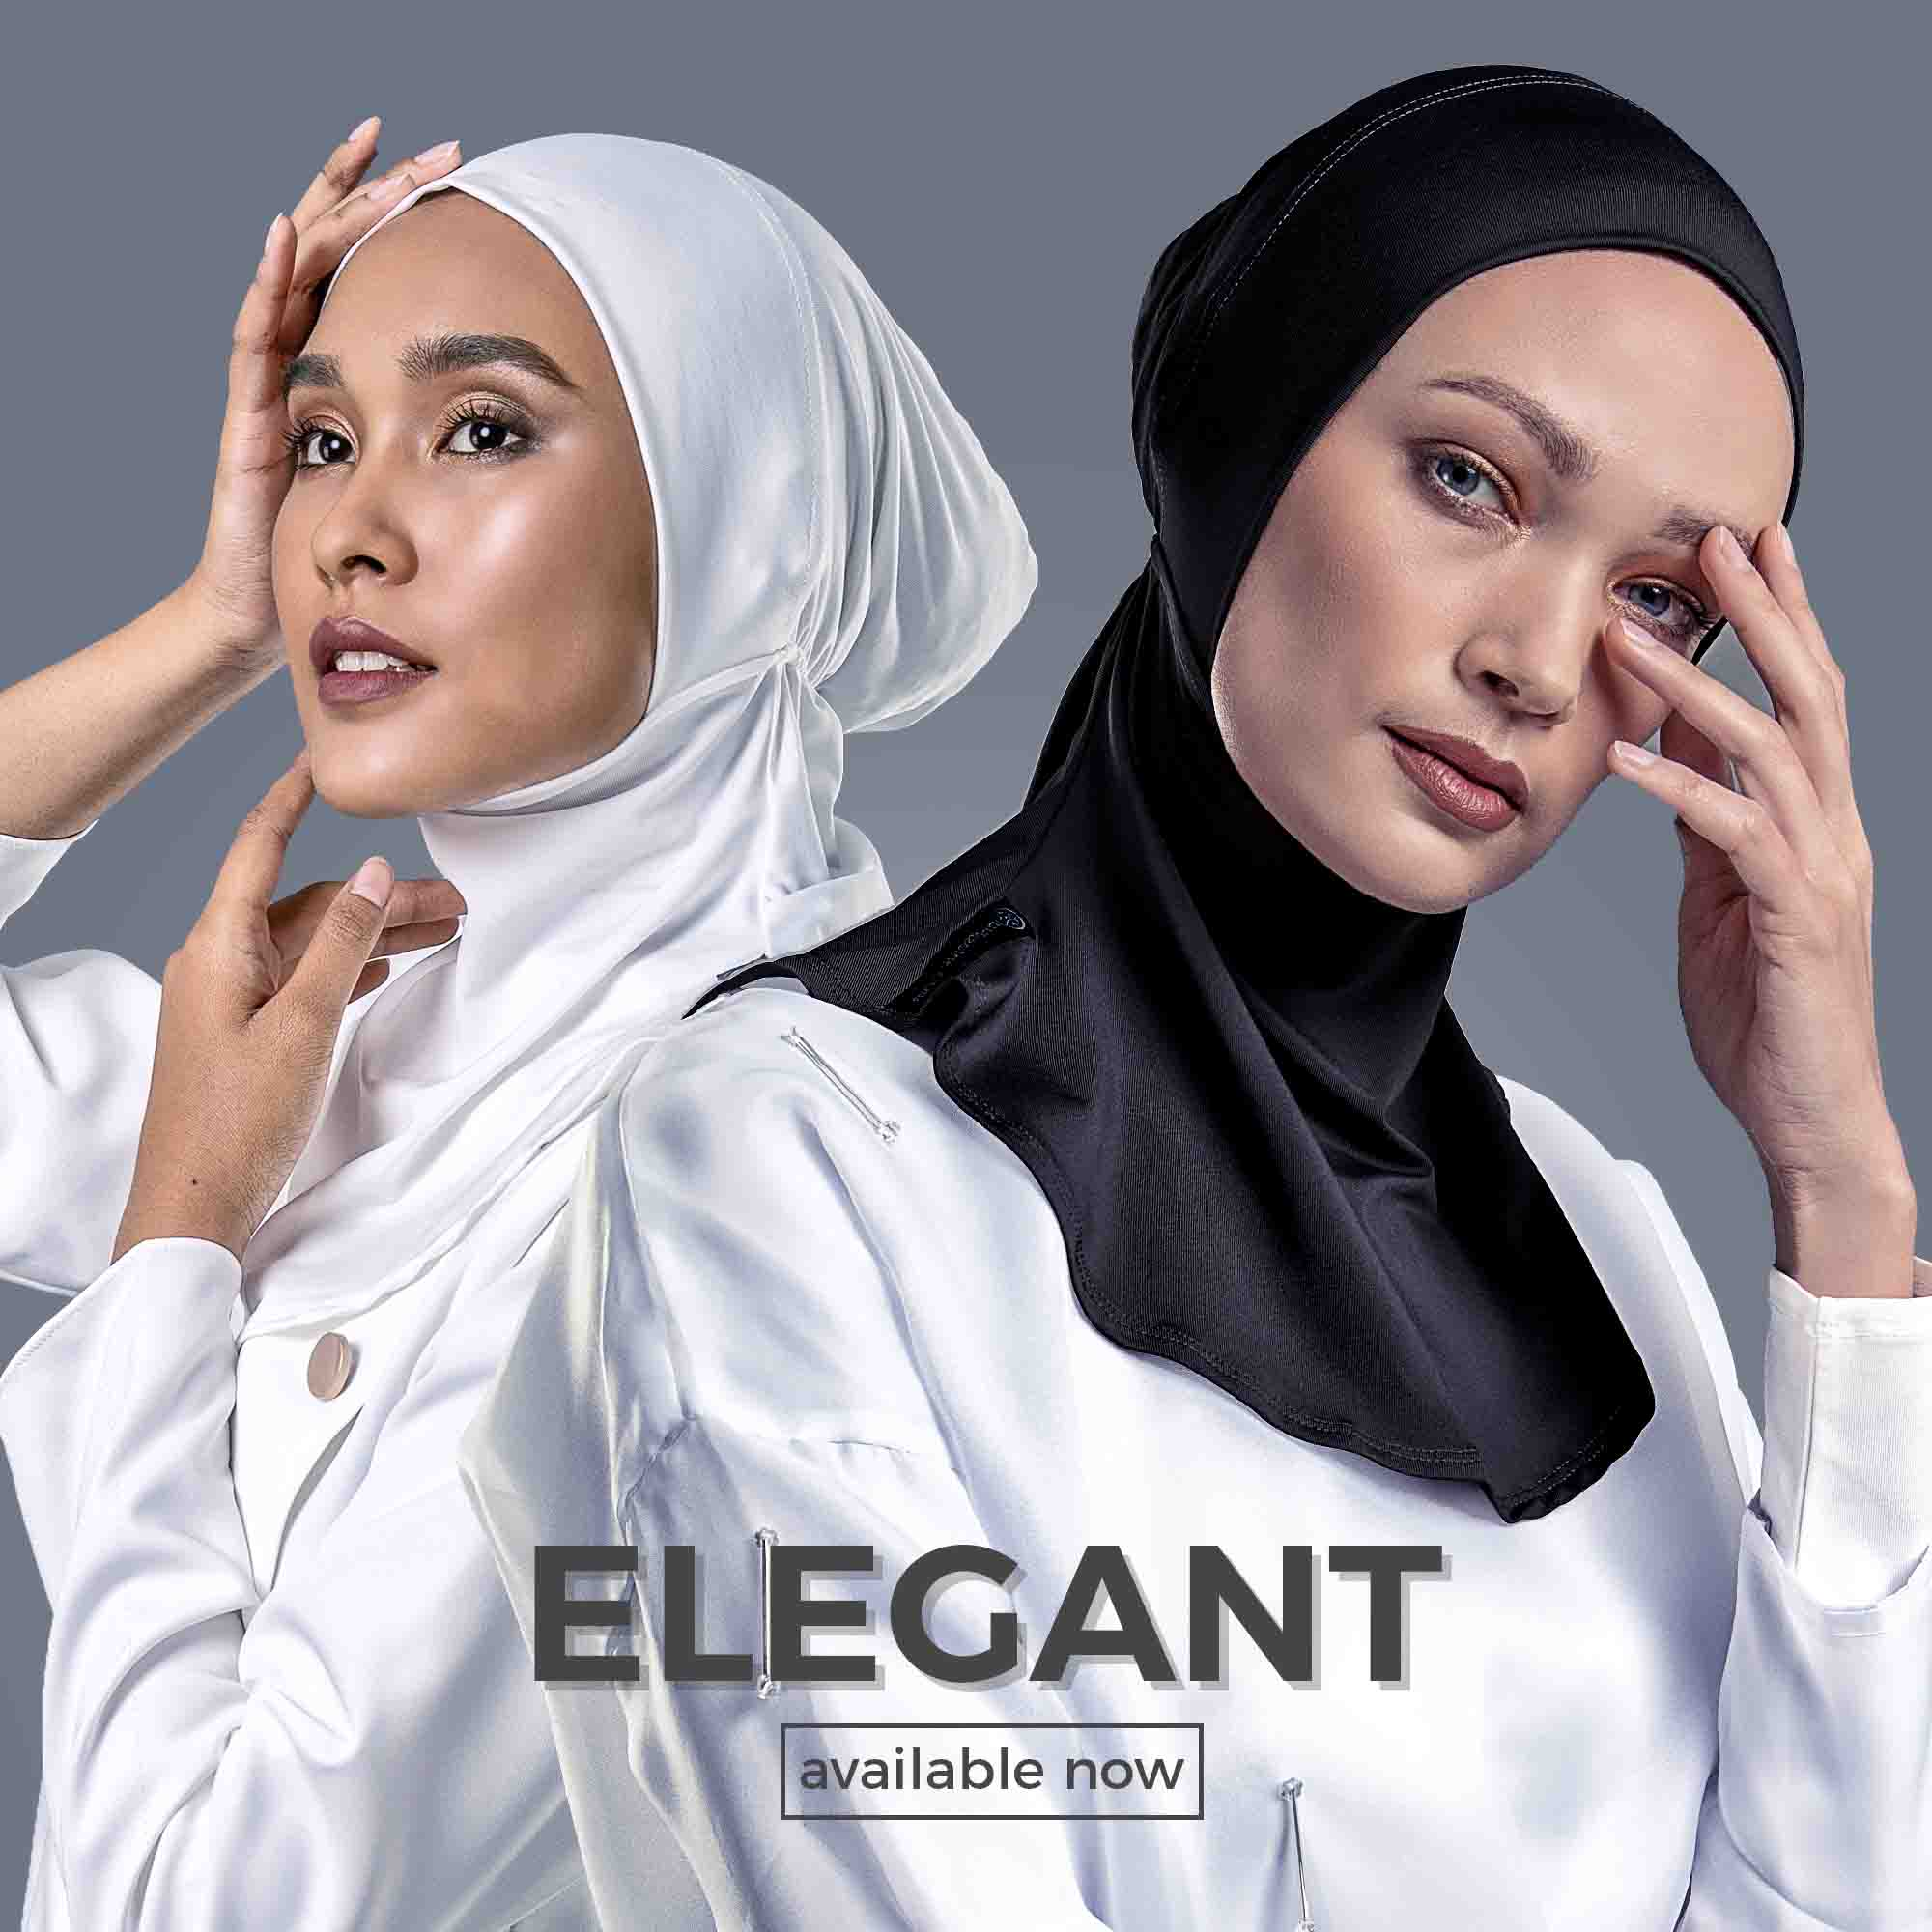 Elegant collection by AIRAZ InnerSejuk